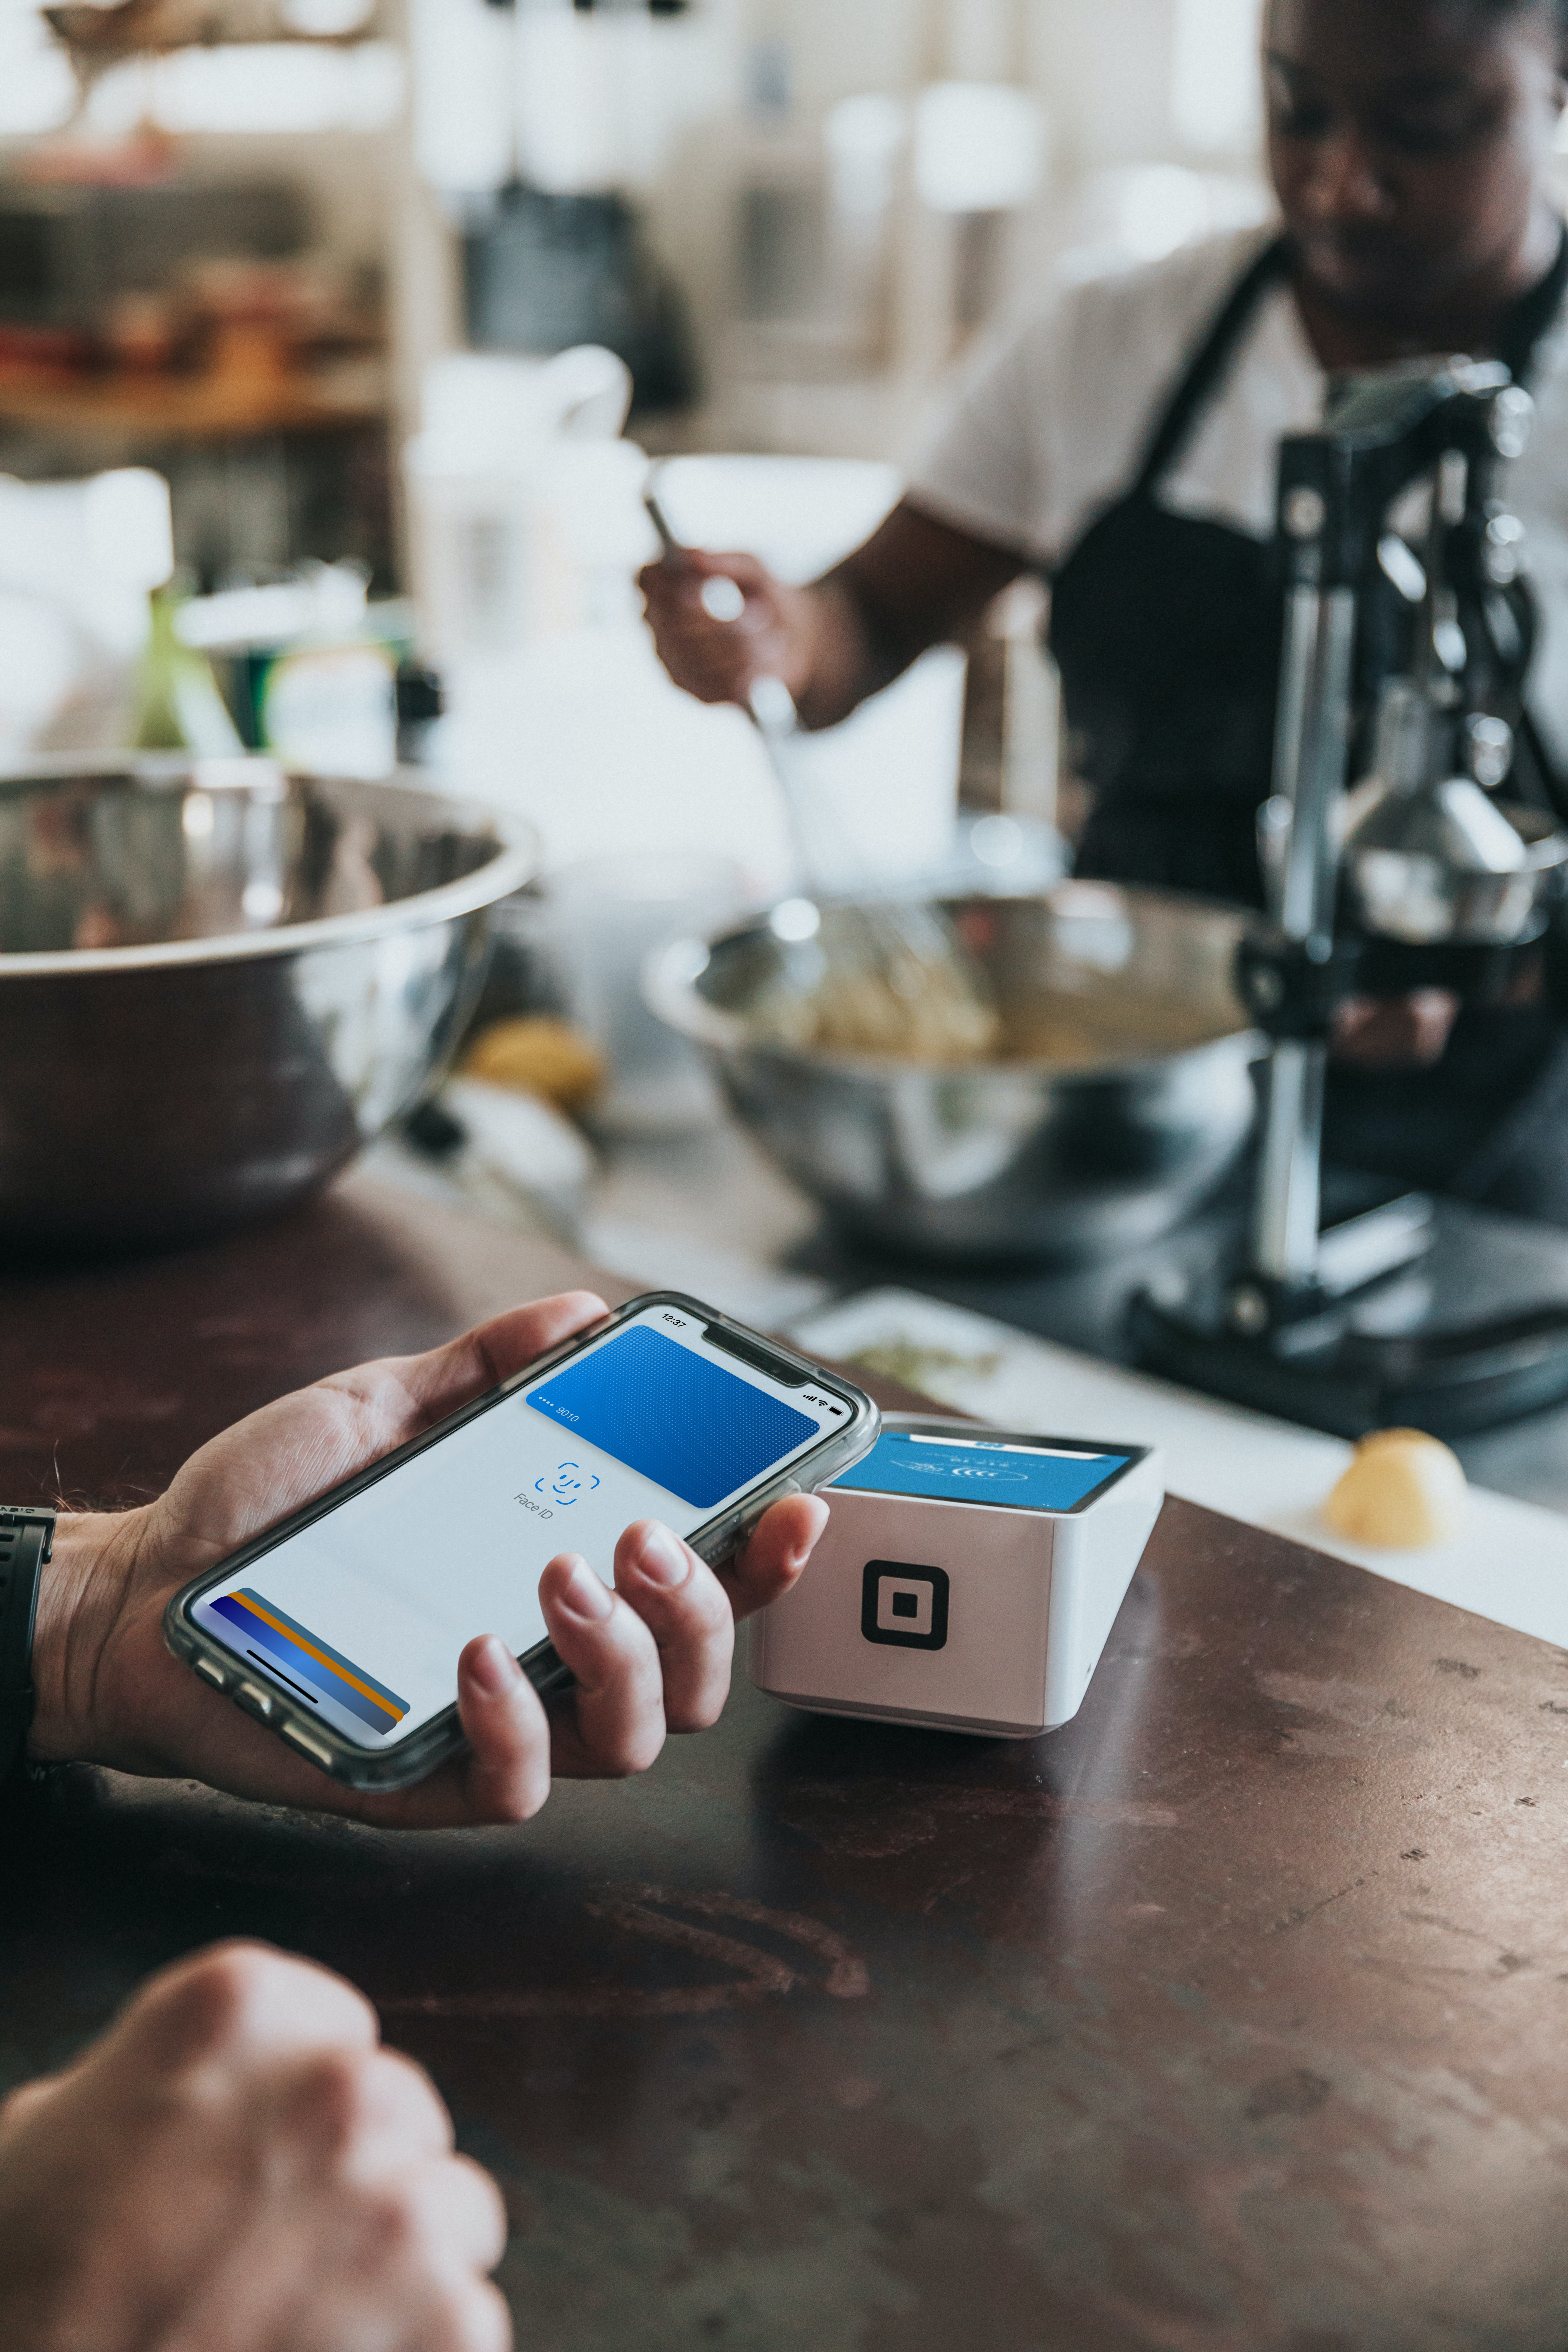 8 things you need to know about using mobile payments in your restaurant